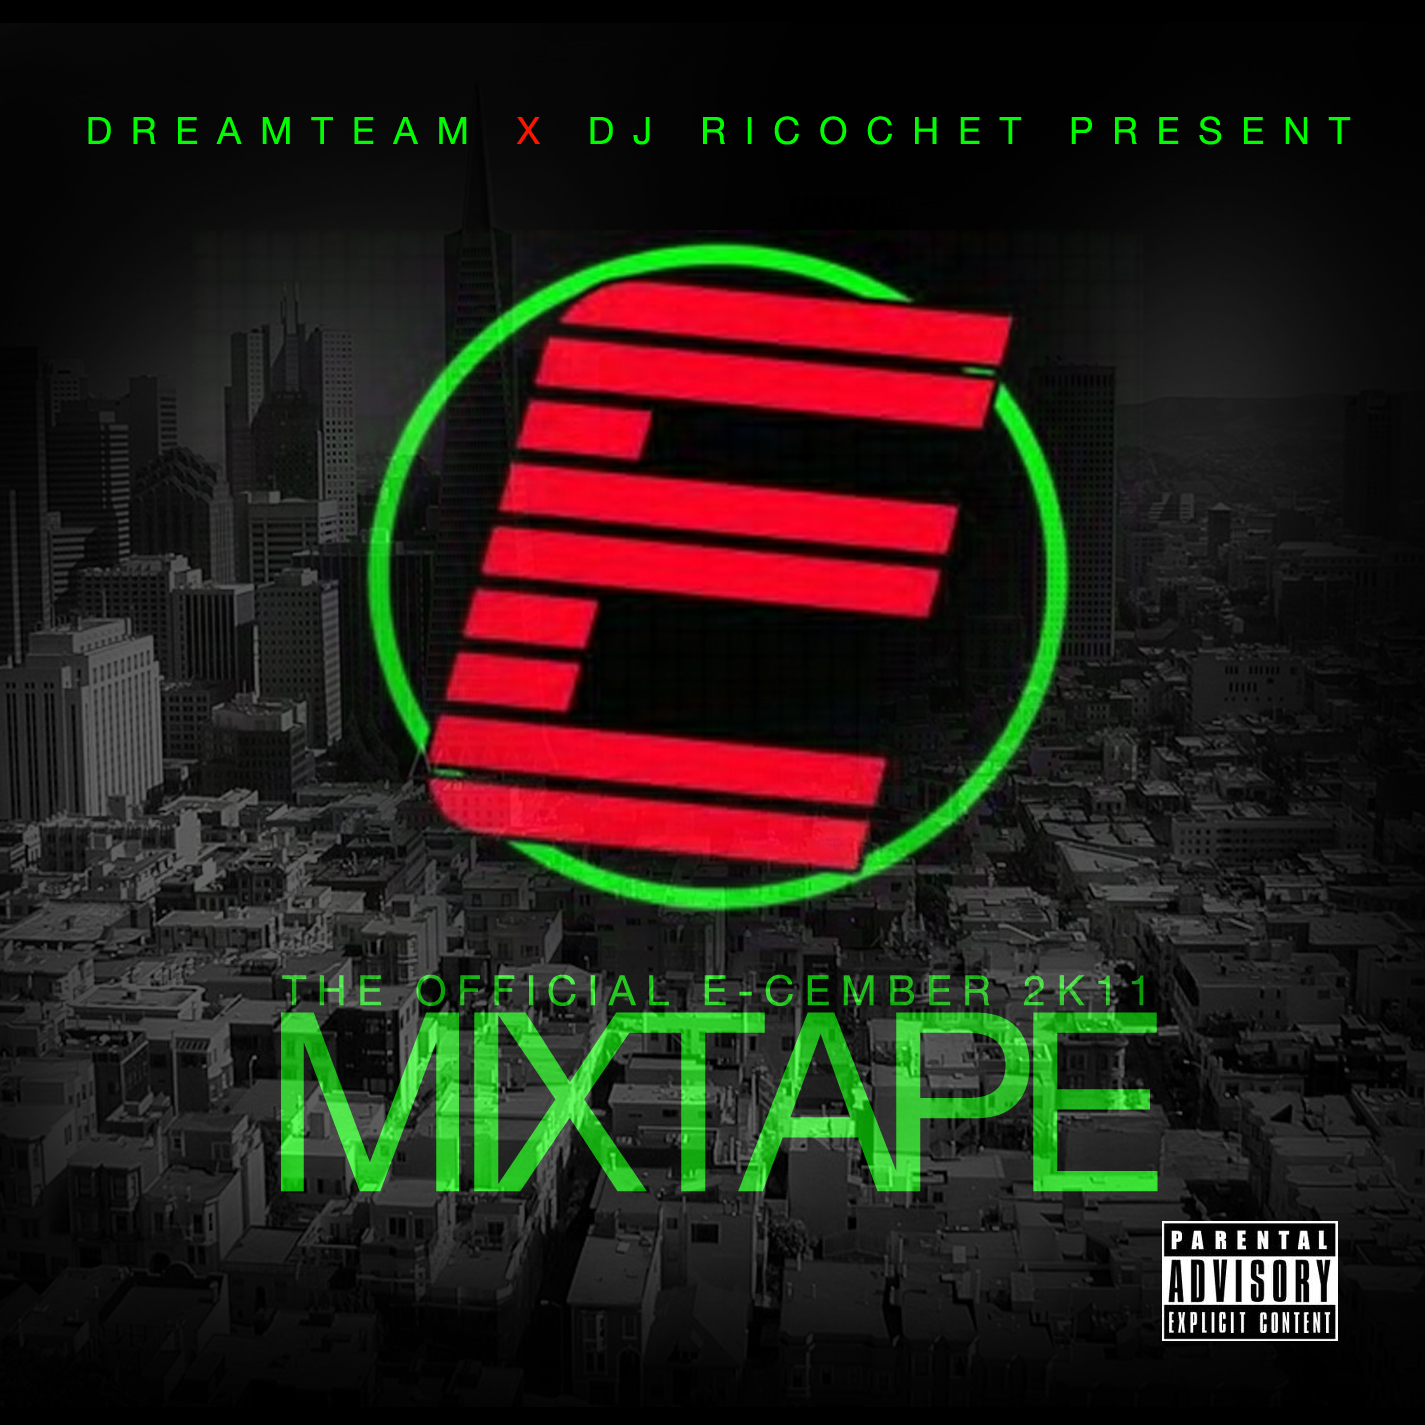 ECEMEBERFRONT The Dreamteam X @DJRicochet03 Presents The Official E-Cember 2K11 (Mixtape)